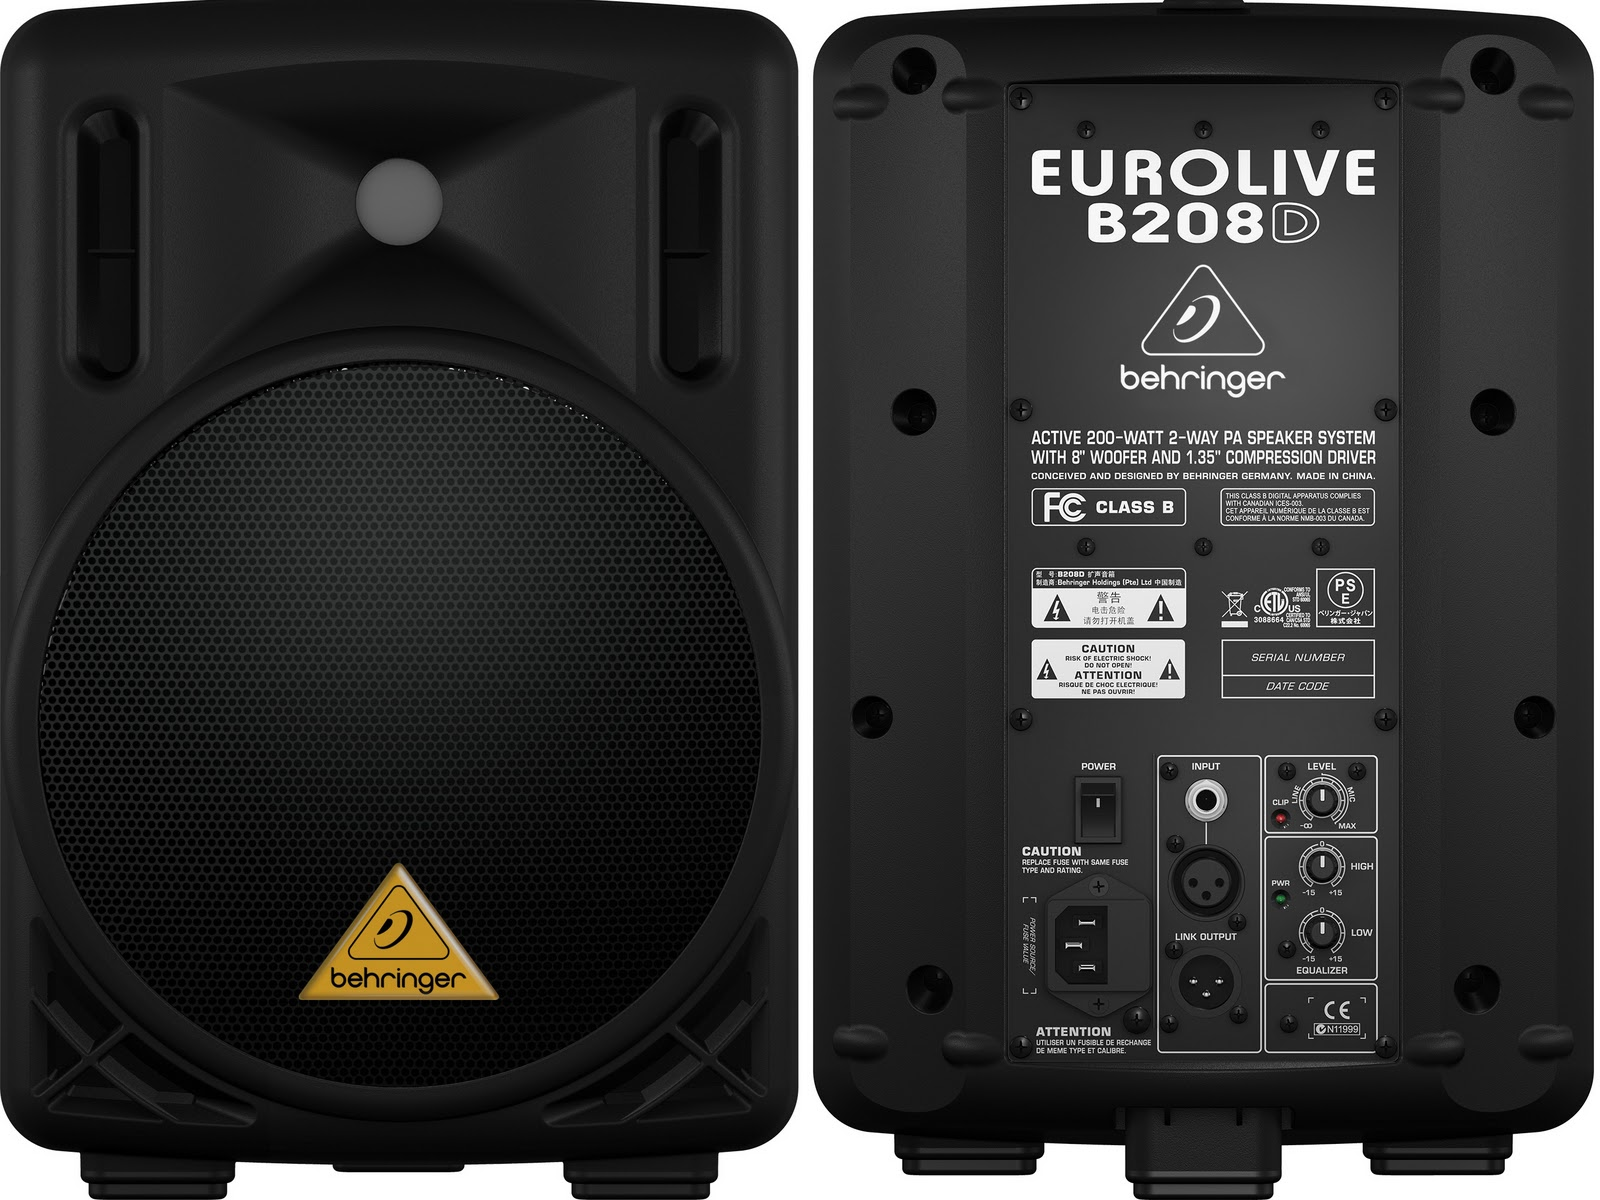 very good loud speaker for stage monitor or public address PA or even home band very powerful 8 inch speaker